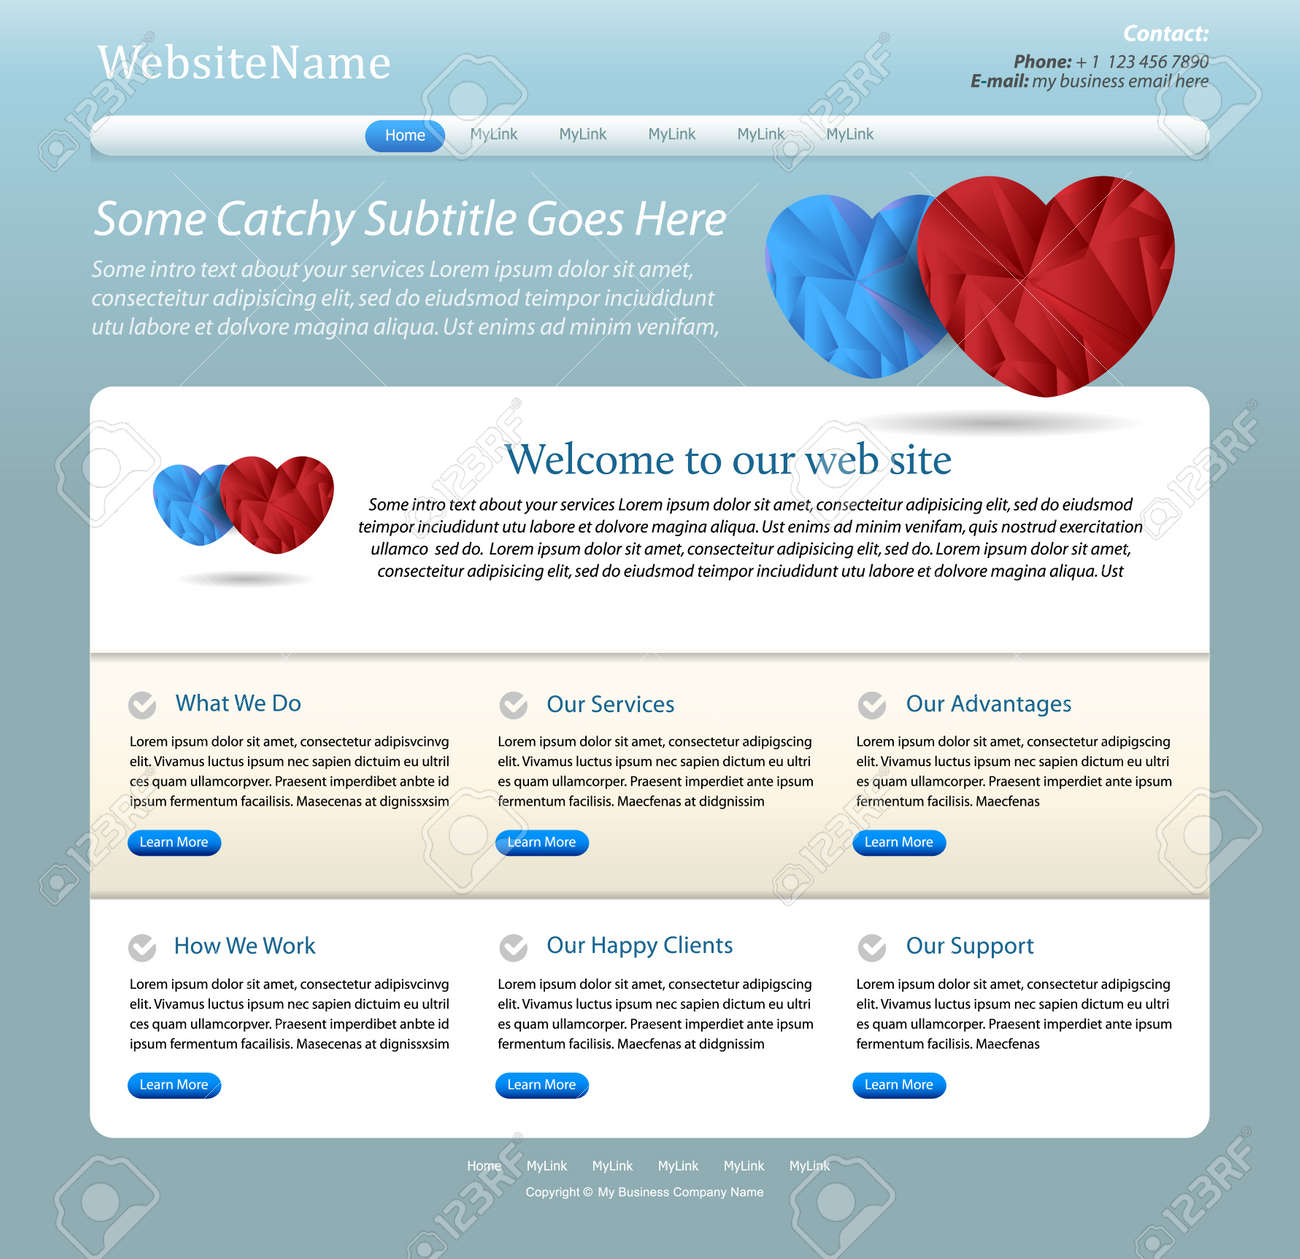 Website Template For Healthcare, Pharmacy Or Medical Company ...